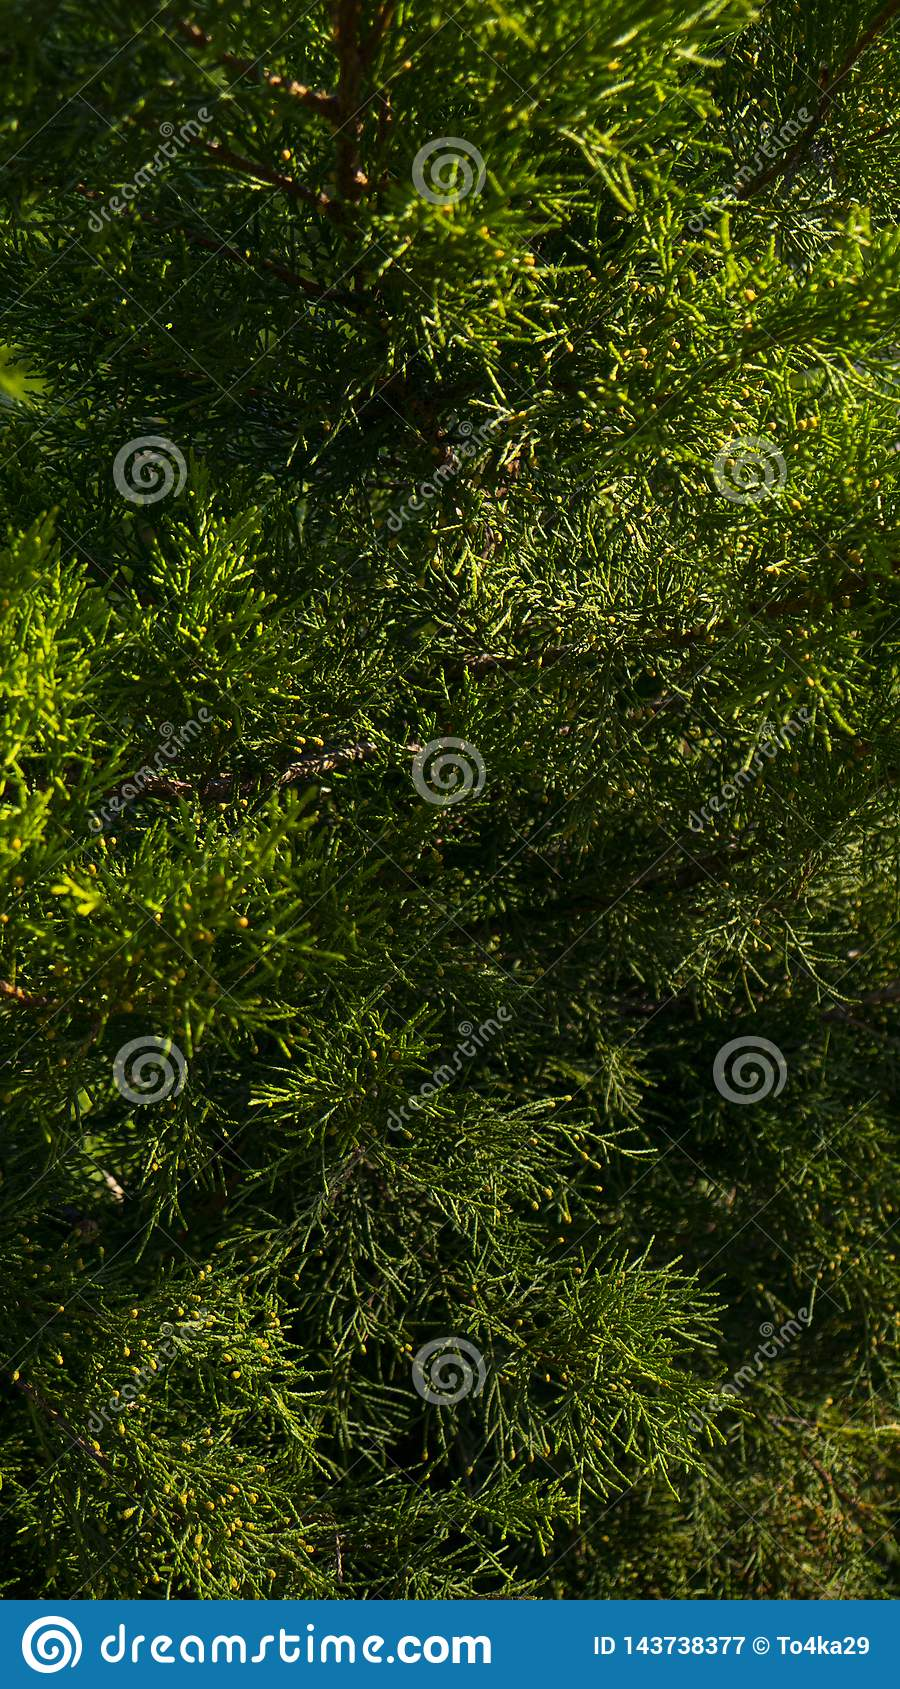 Branches of coniferous wood. Pine needles. Evergreen pine tree branch